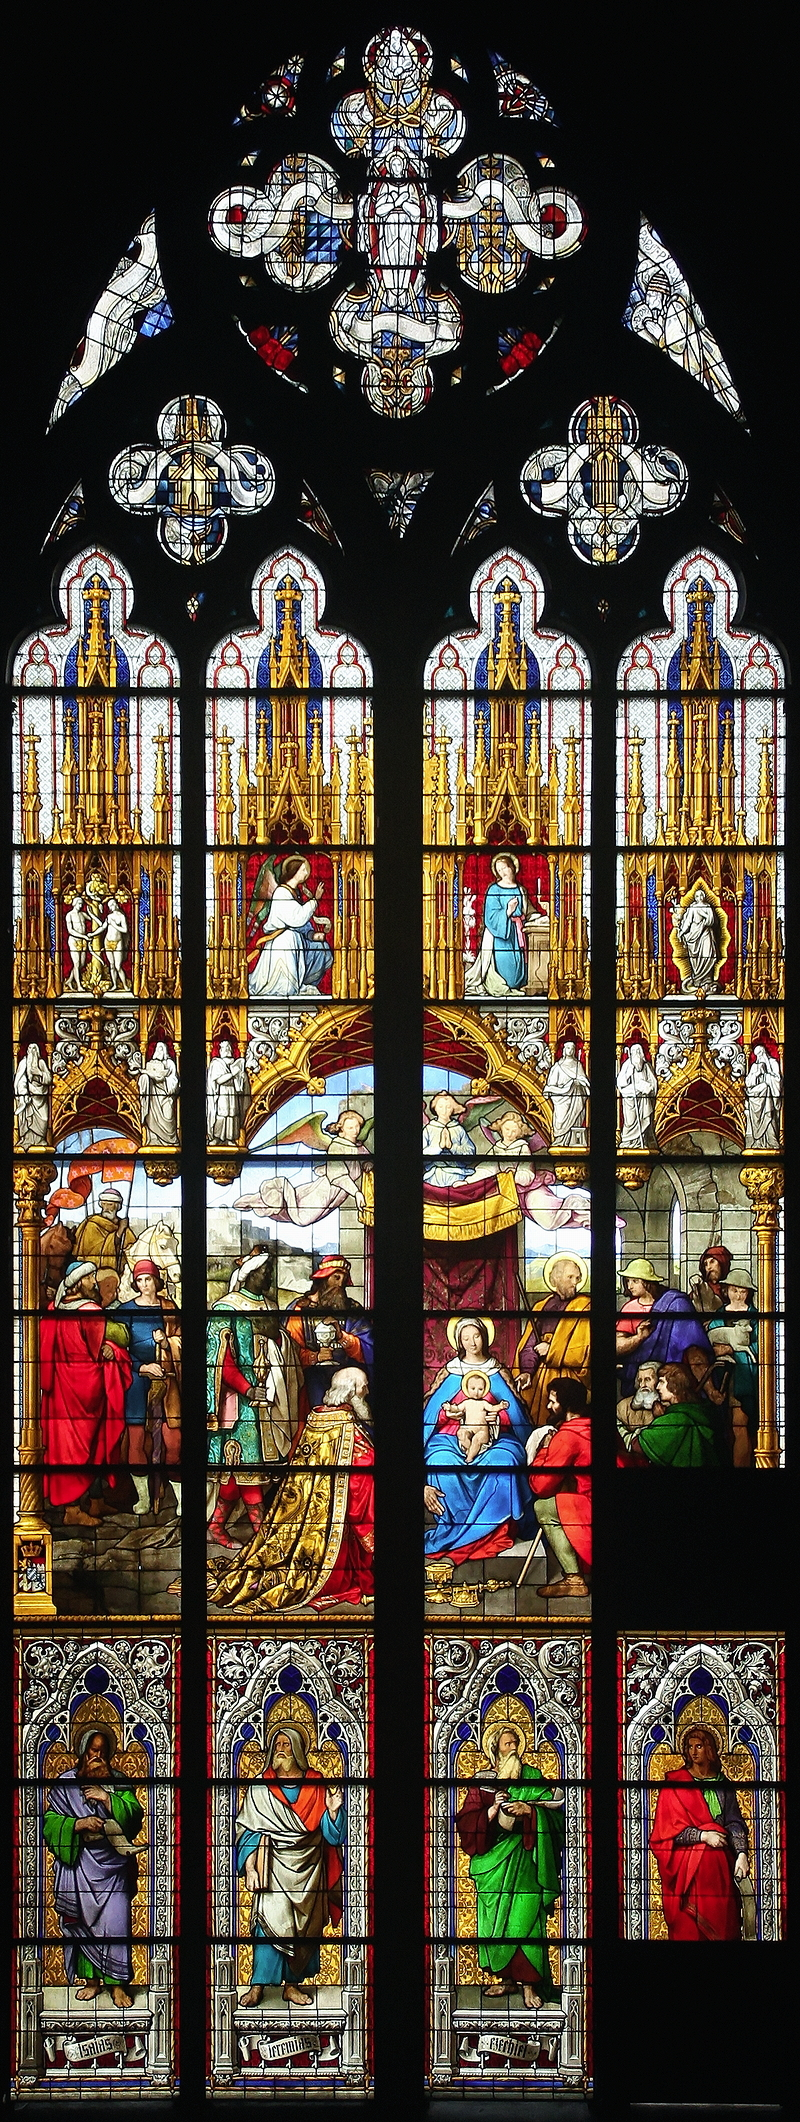 Adoration Window, Cologne Cathedral